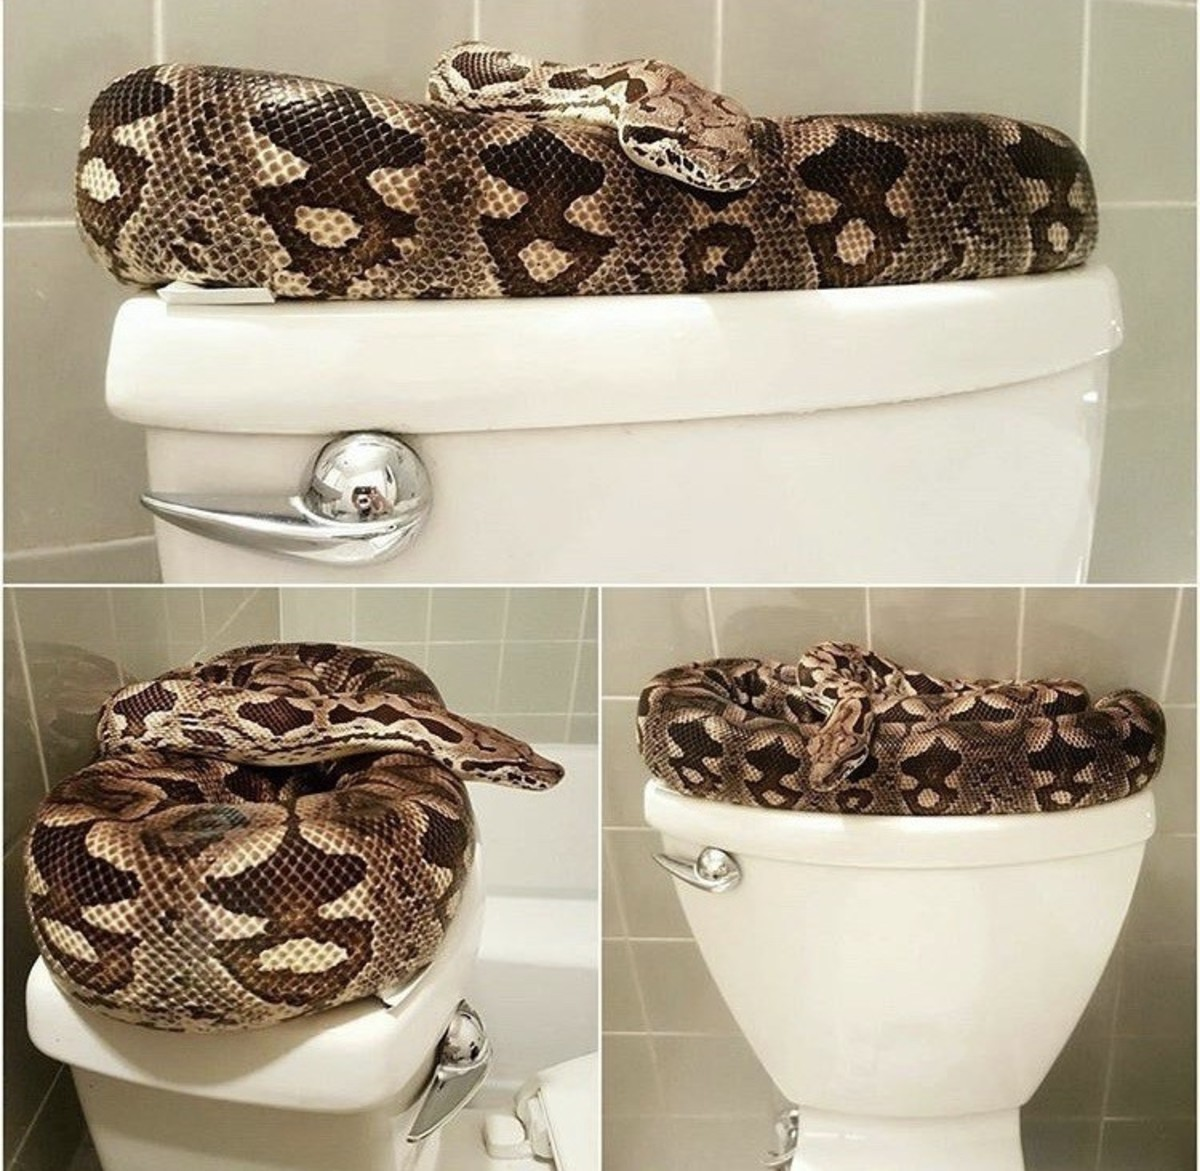 can-snakes-really-come-up-a-toilet